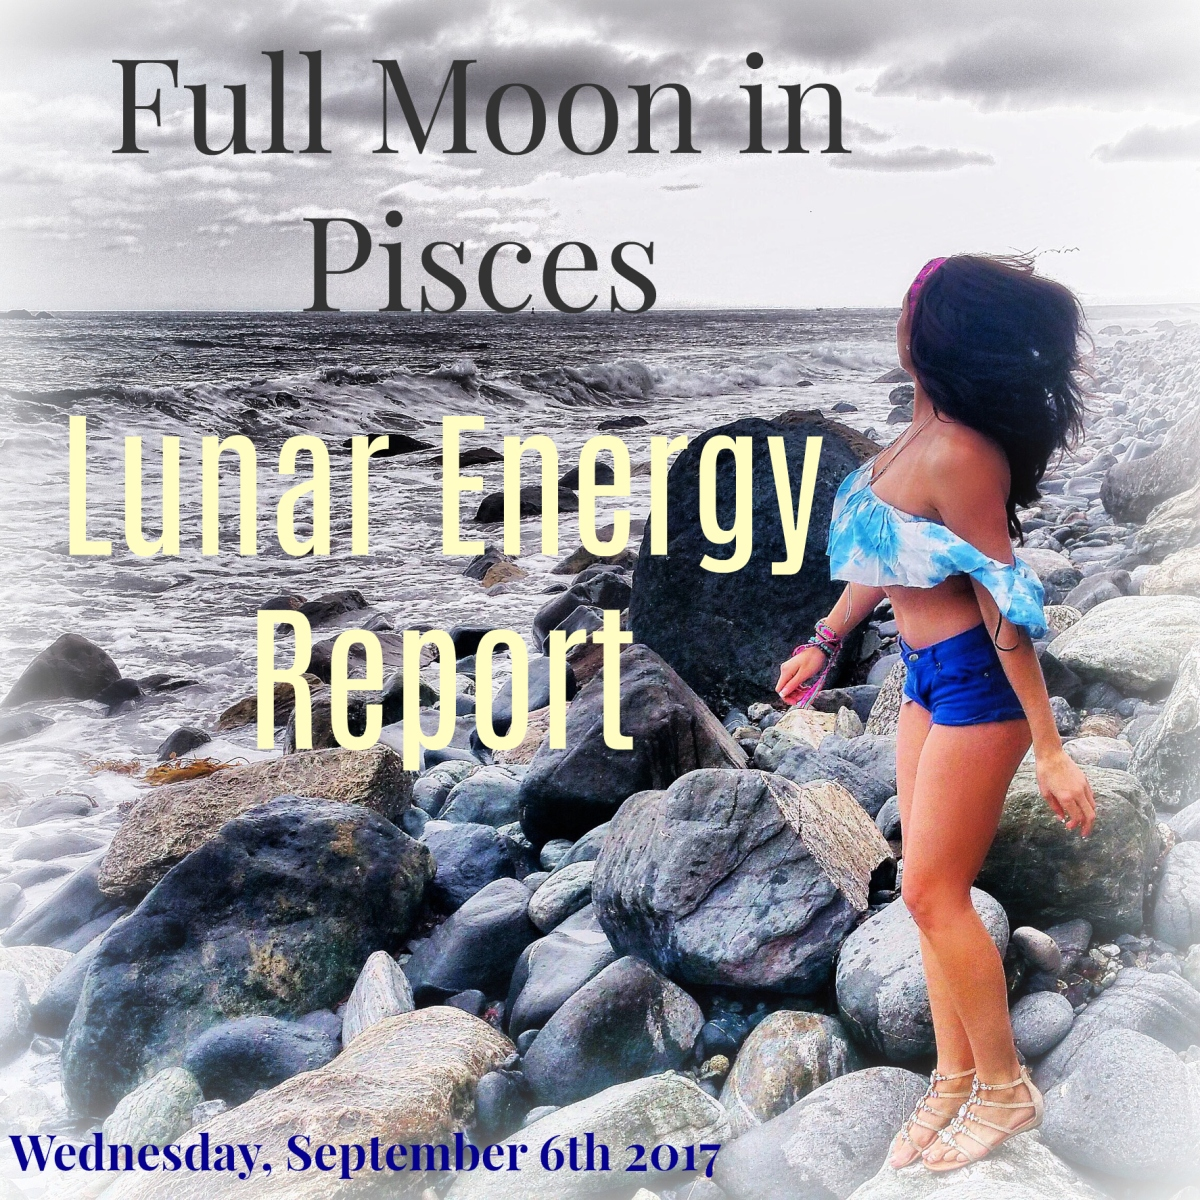 The Full Moon in Pisces: A Call for Compassion and Soul Service